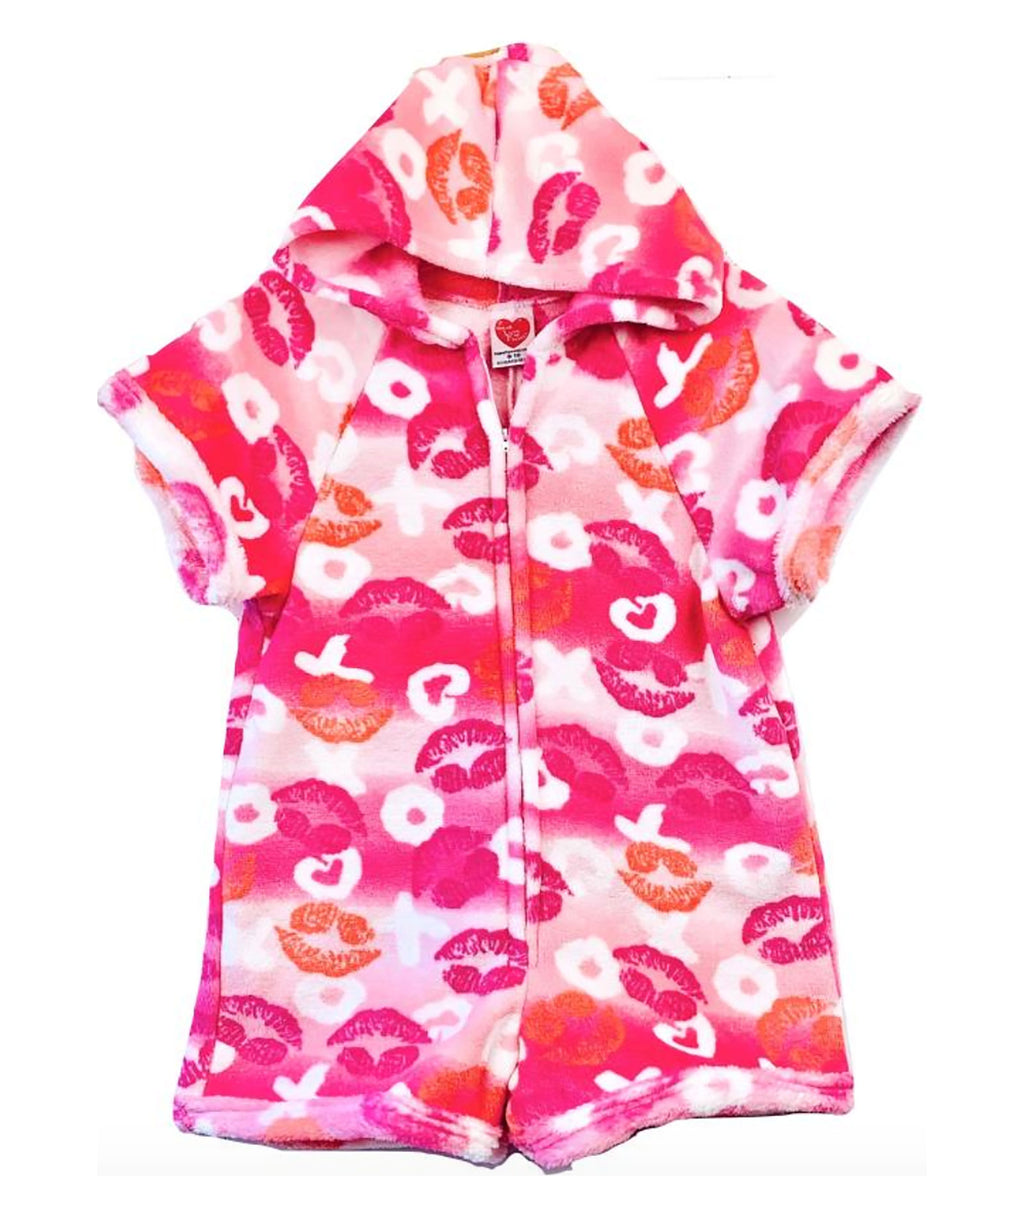 Made with Love and Kisses Girls Pink Lips Romper